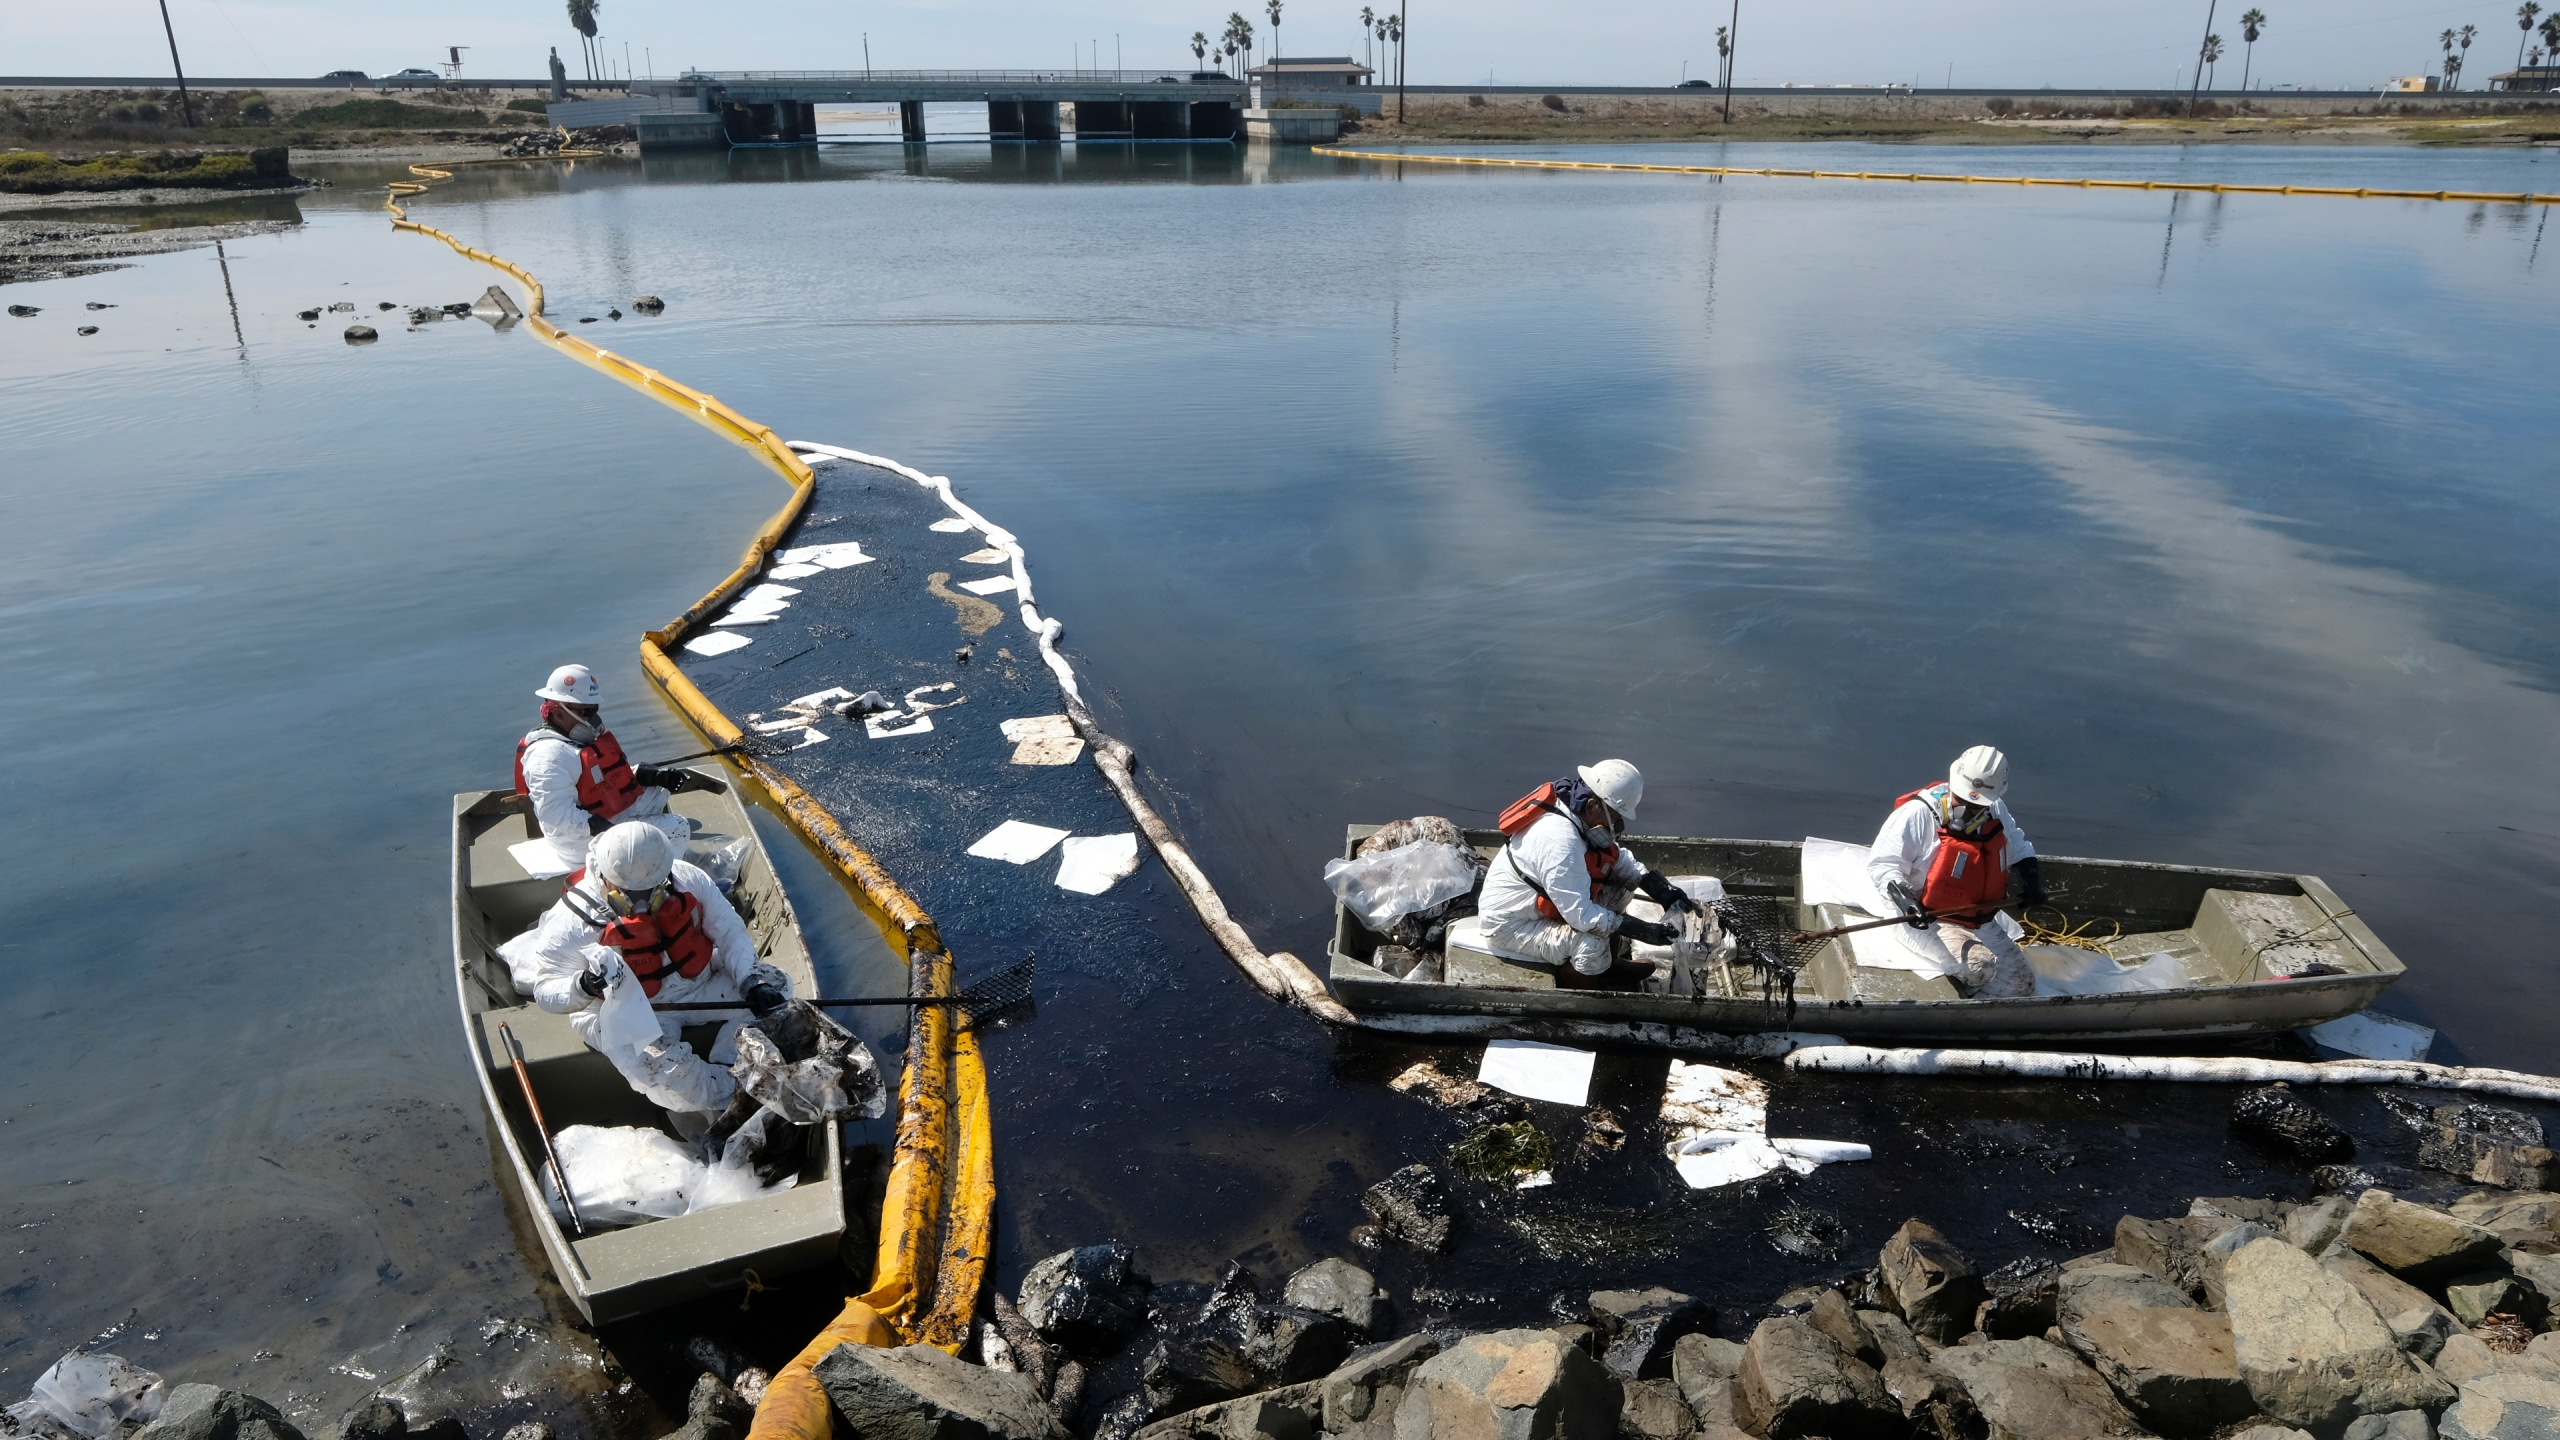 Cleanup contractors deploy skimmers and floating barriers known as booms to try to stop further oil crude incursion into the Wetlands Talbert Marsh in Huntington Beach, Calif., Sunday., Oct. 3, 2021. One of the largest oil spills in recent Southern California history fouled popular beaches and killed wildlife while crews scrambled Sunday to contain the crude before it spread further into protected wetlands. (AP Photo/Ringo H.W. Chiu)